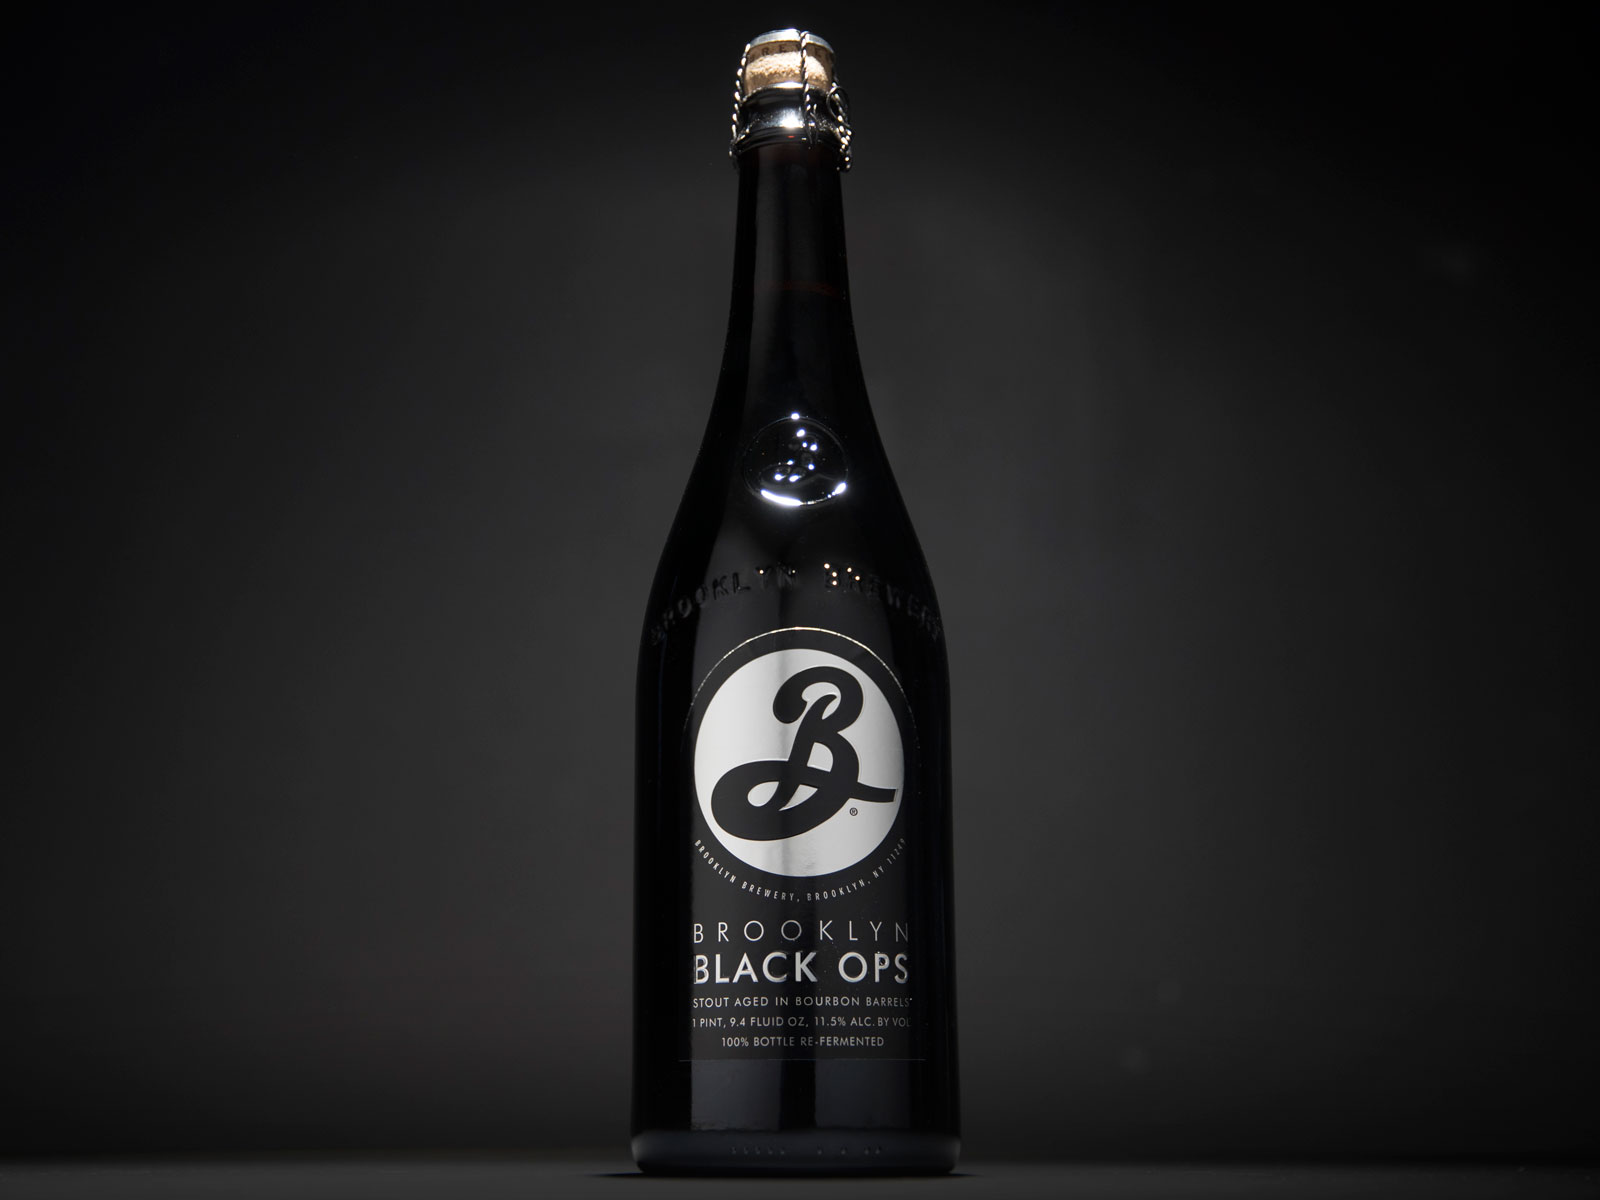 Black Ops by Brooklyn Brewery